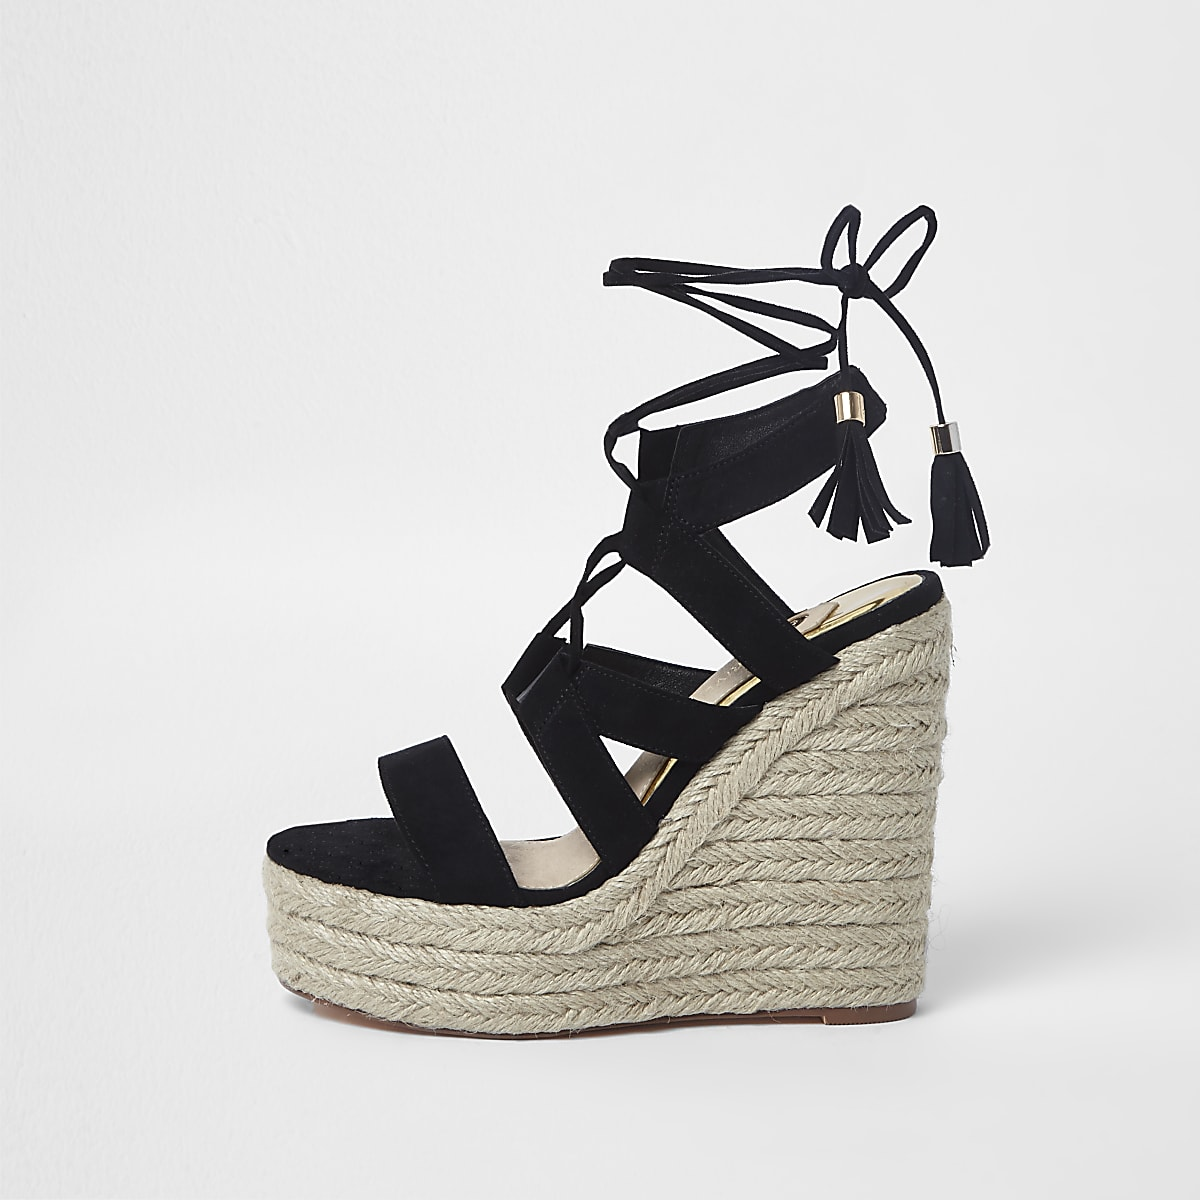 01082e2dc4d7 Black lace-up espadrille wedges sandals - Sandals - Shoes   Boots - women